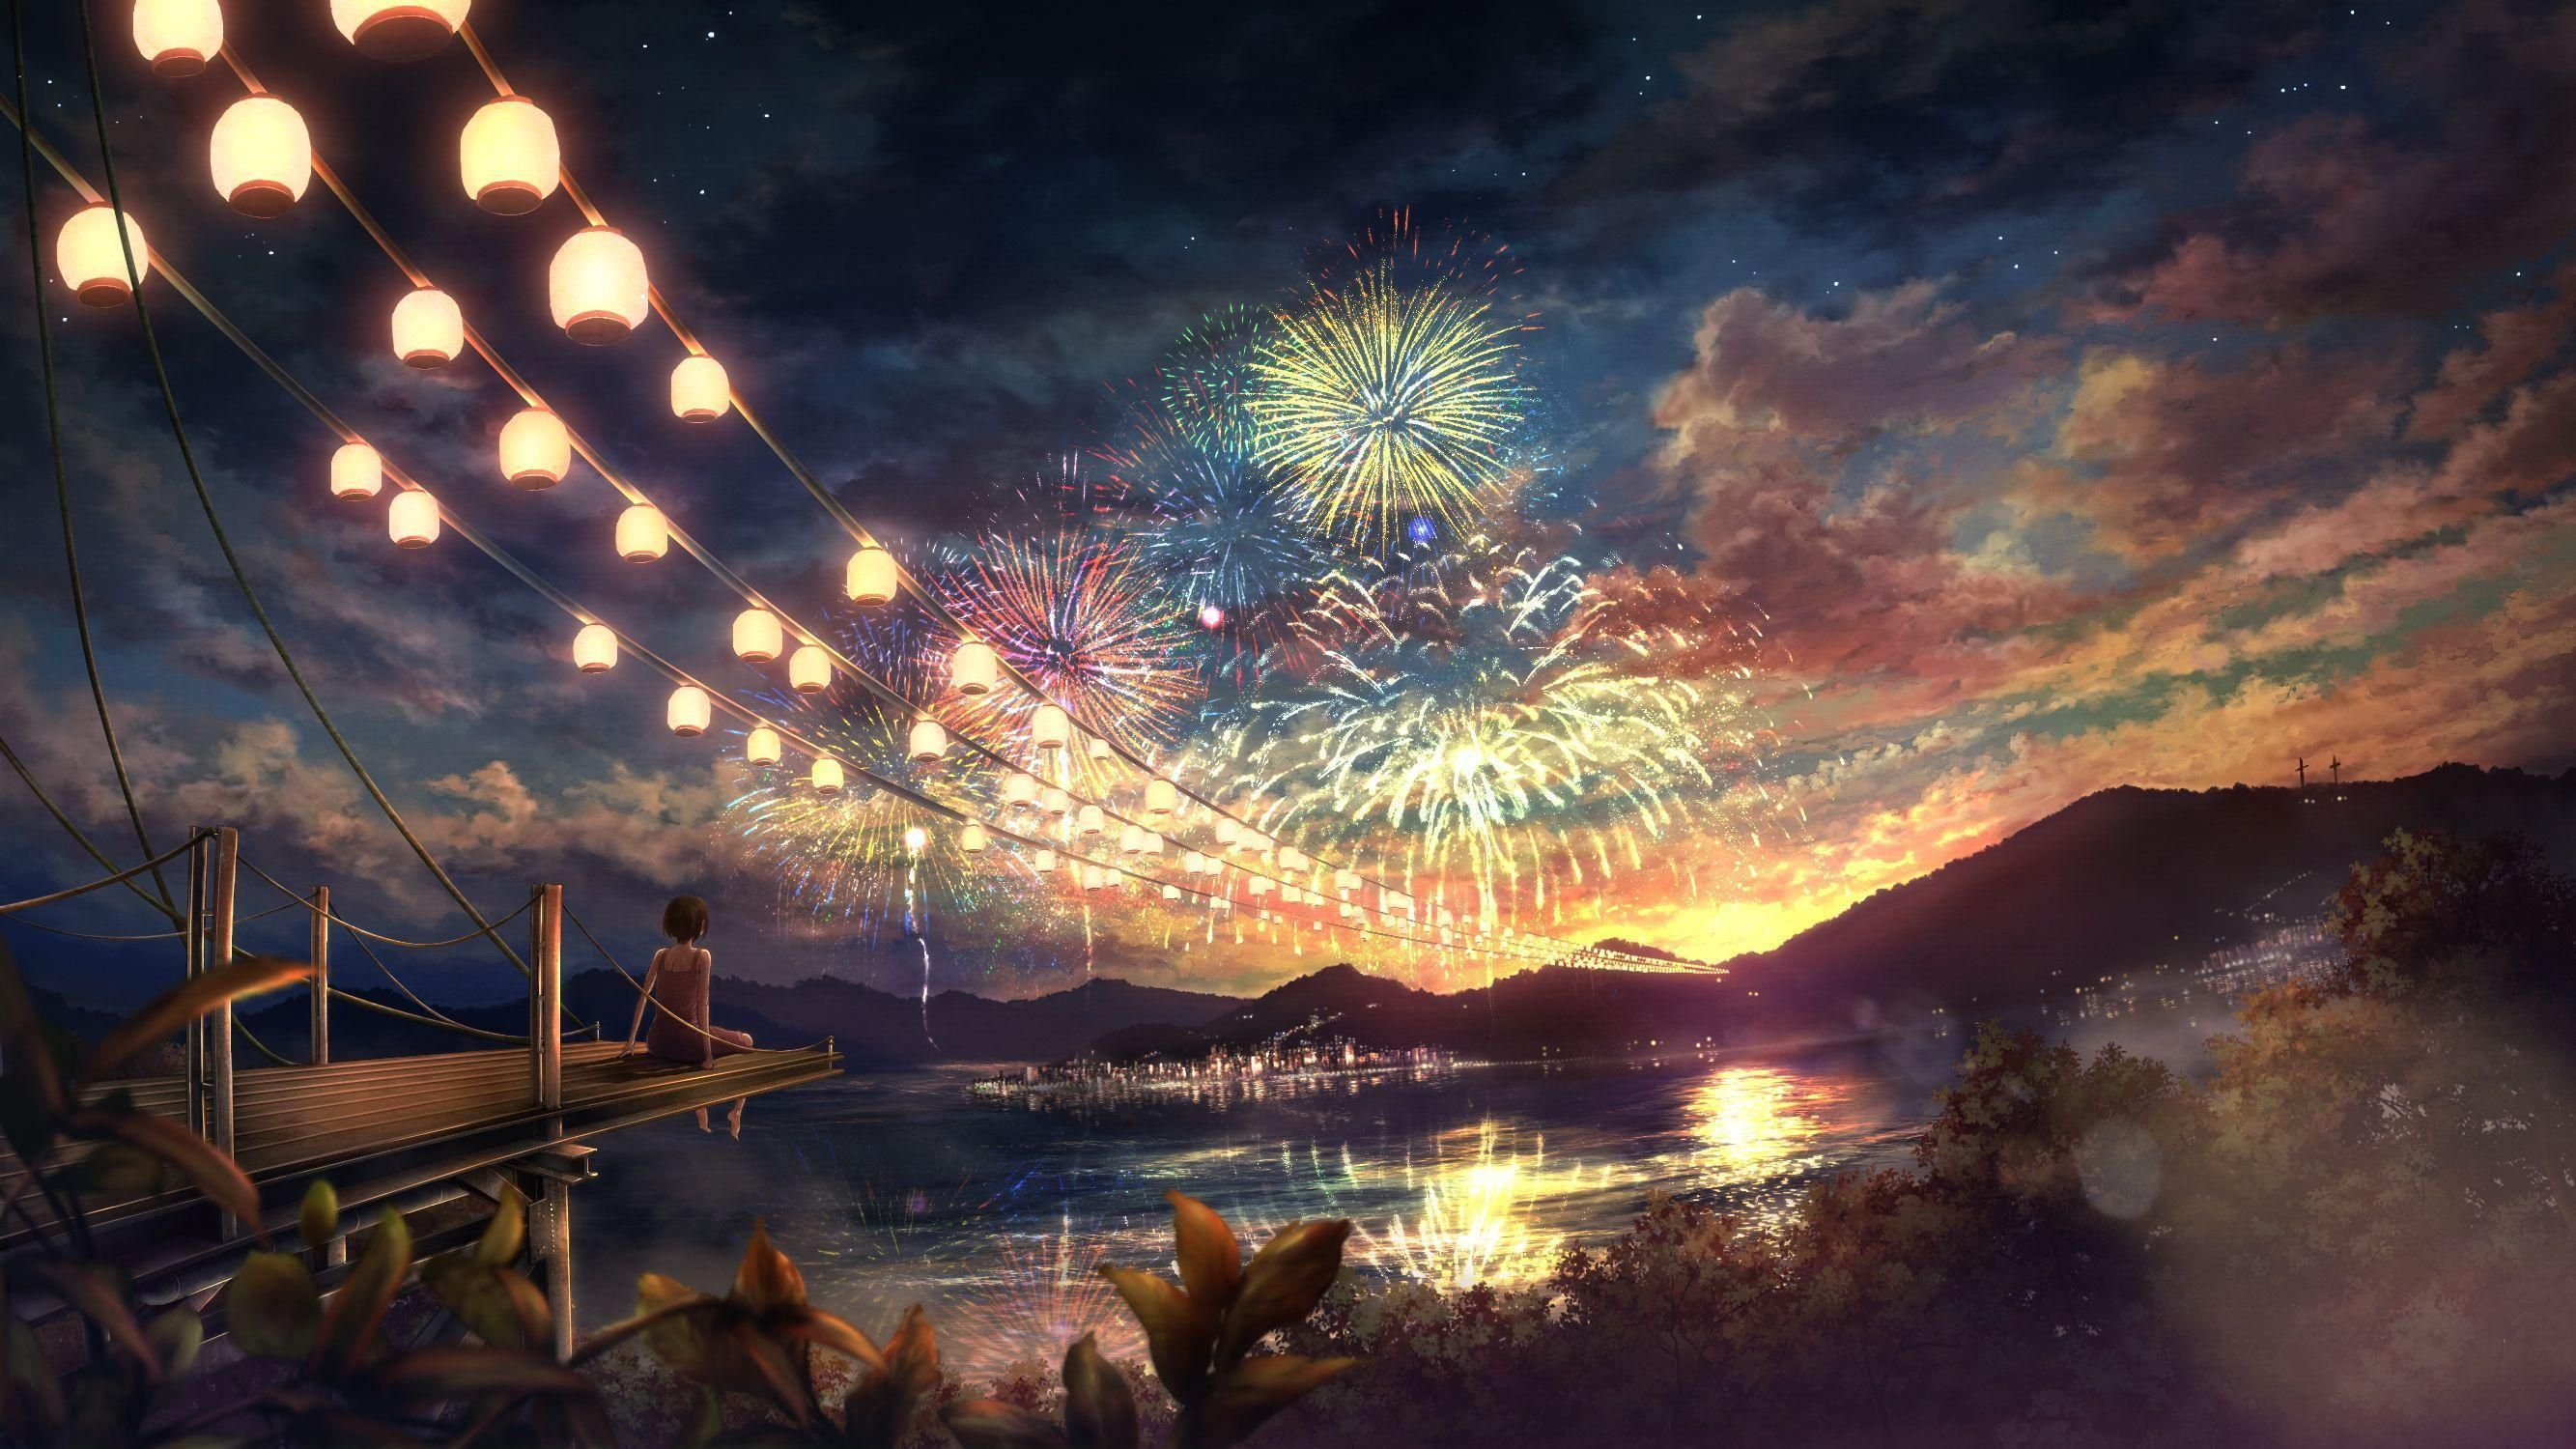 Anime Scenery Wallpaper Beautiful Anime Scenery